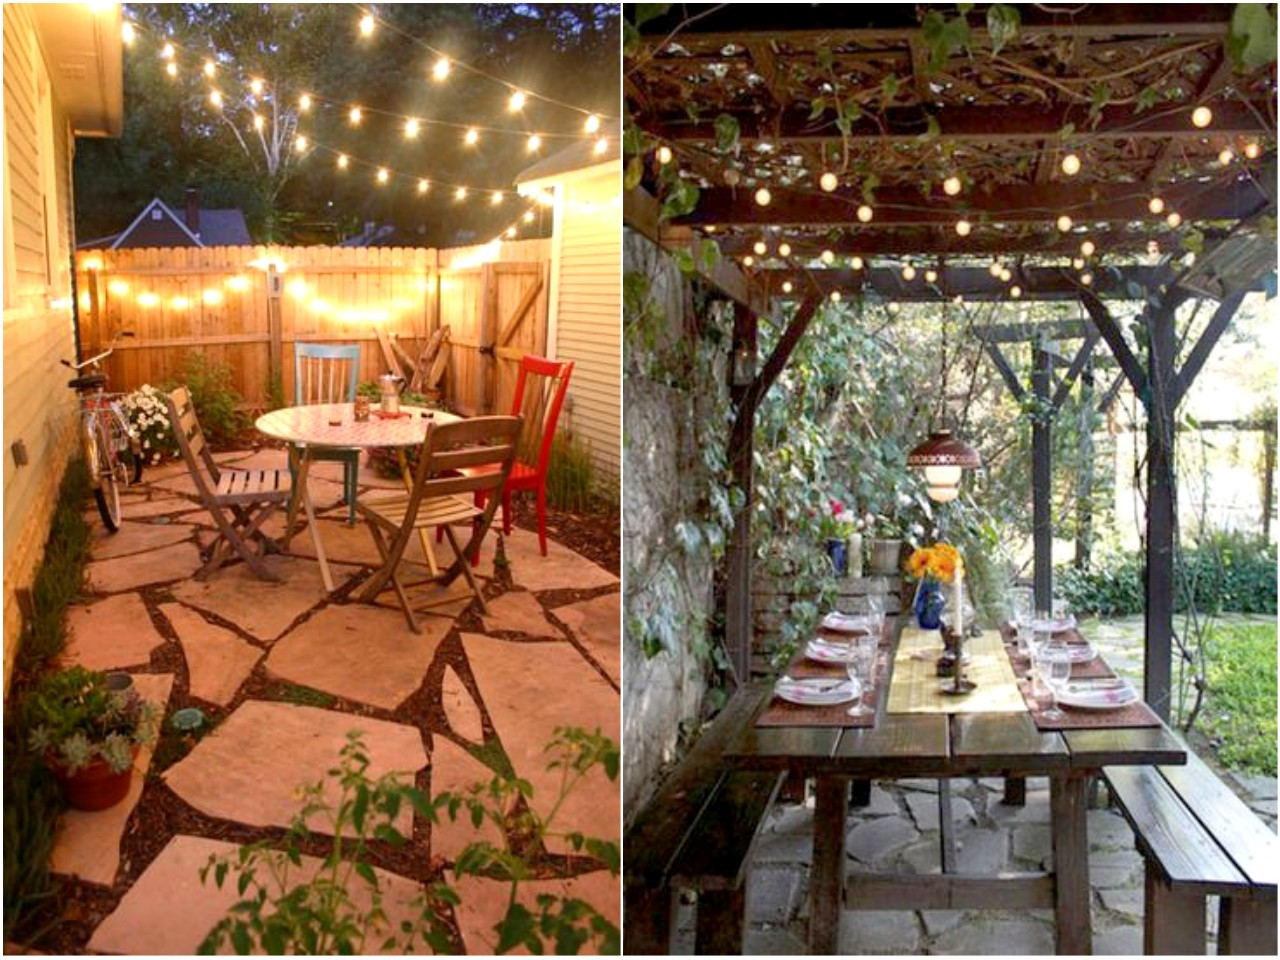 30 ideas para descubrir la decoraci n con luces de colores - Luces para patios ...